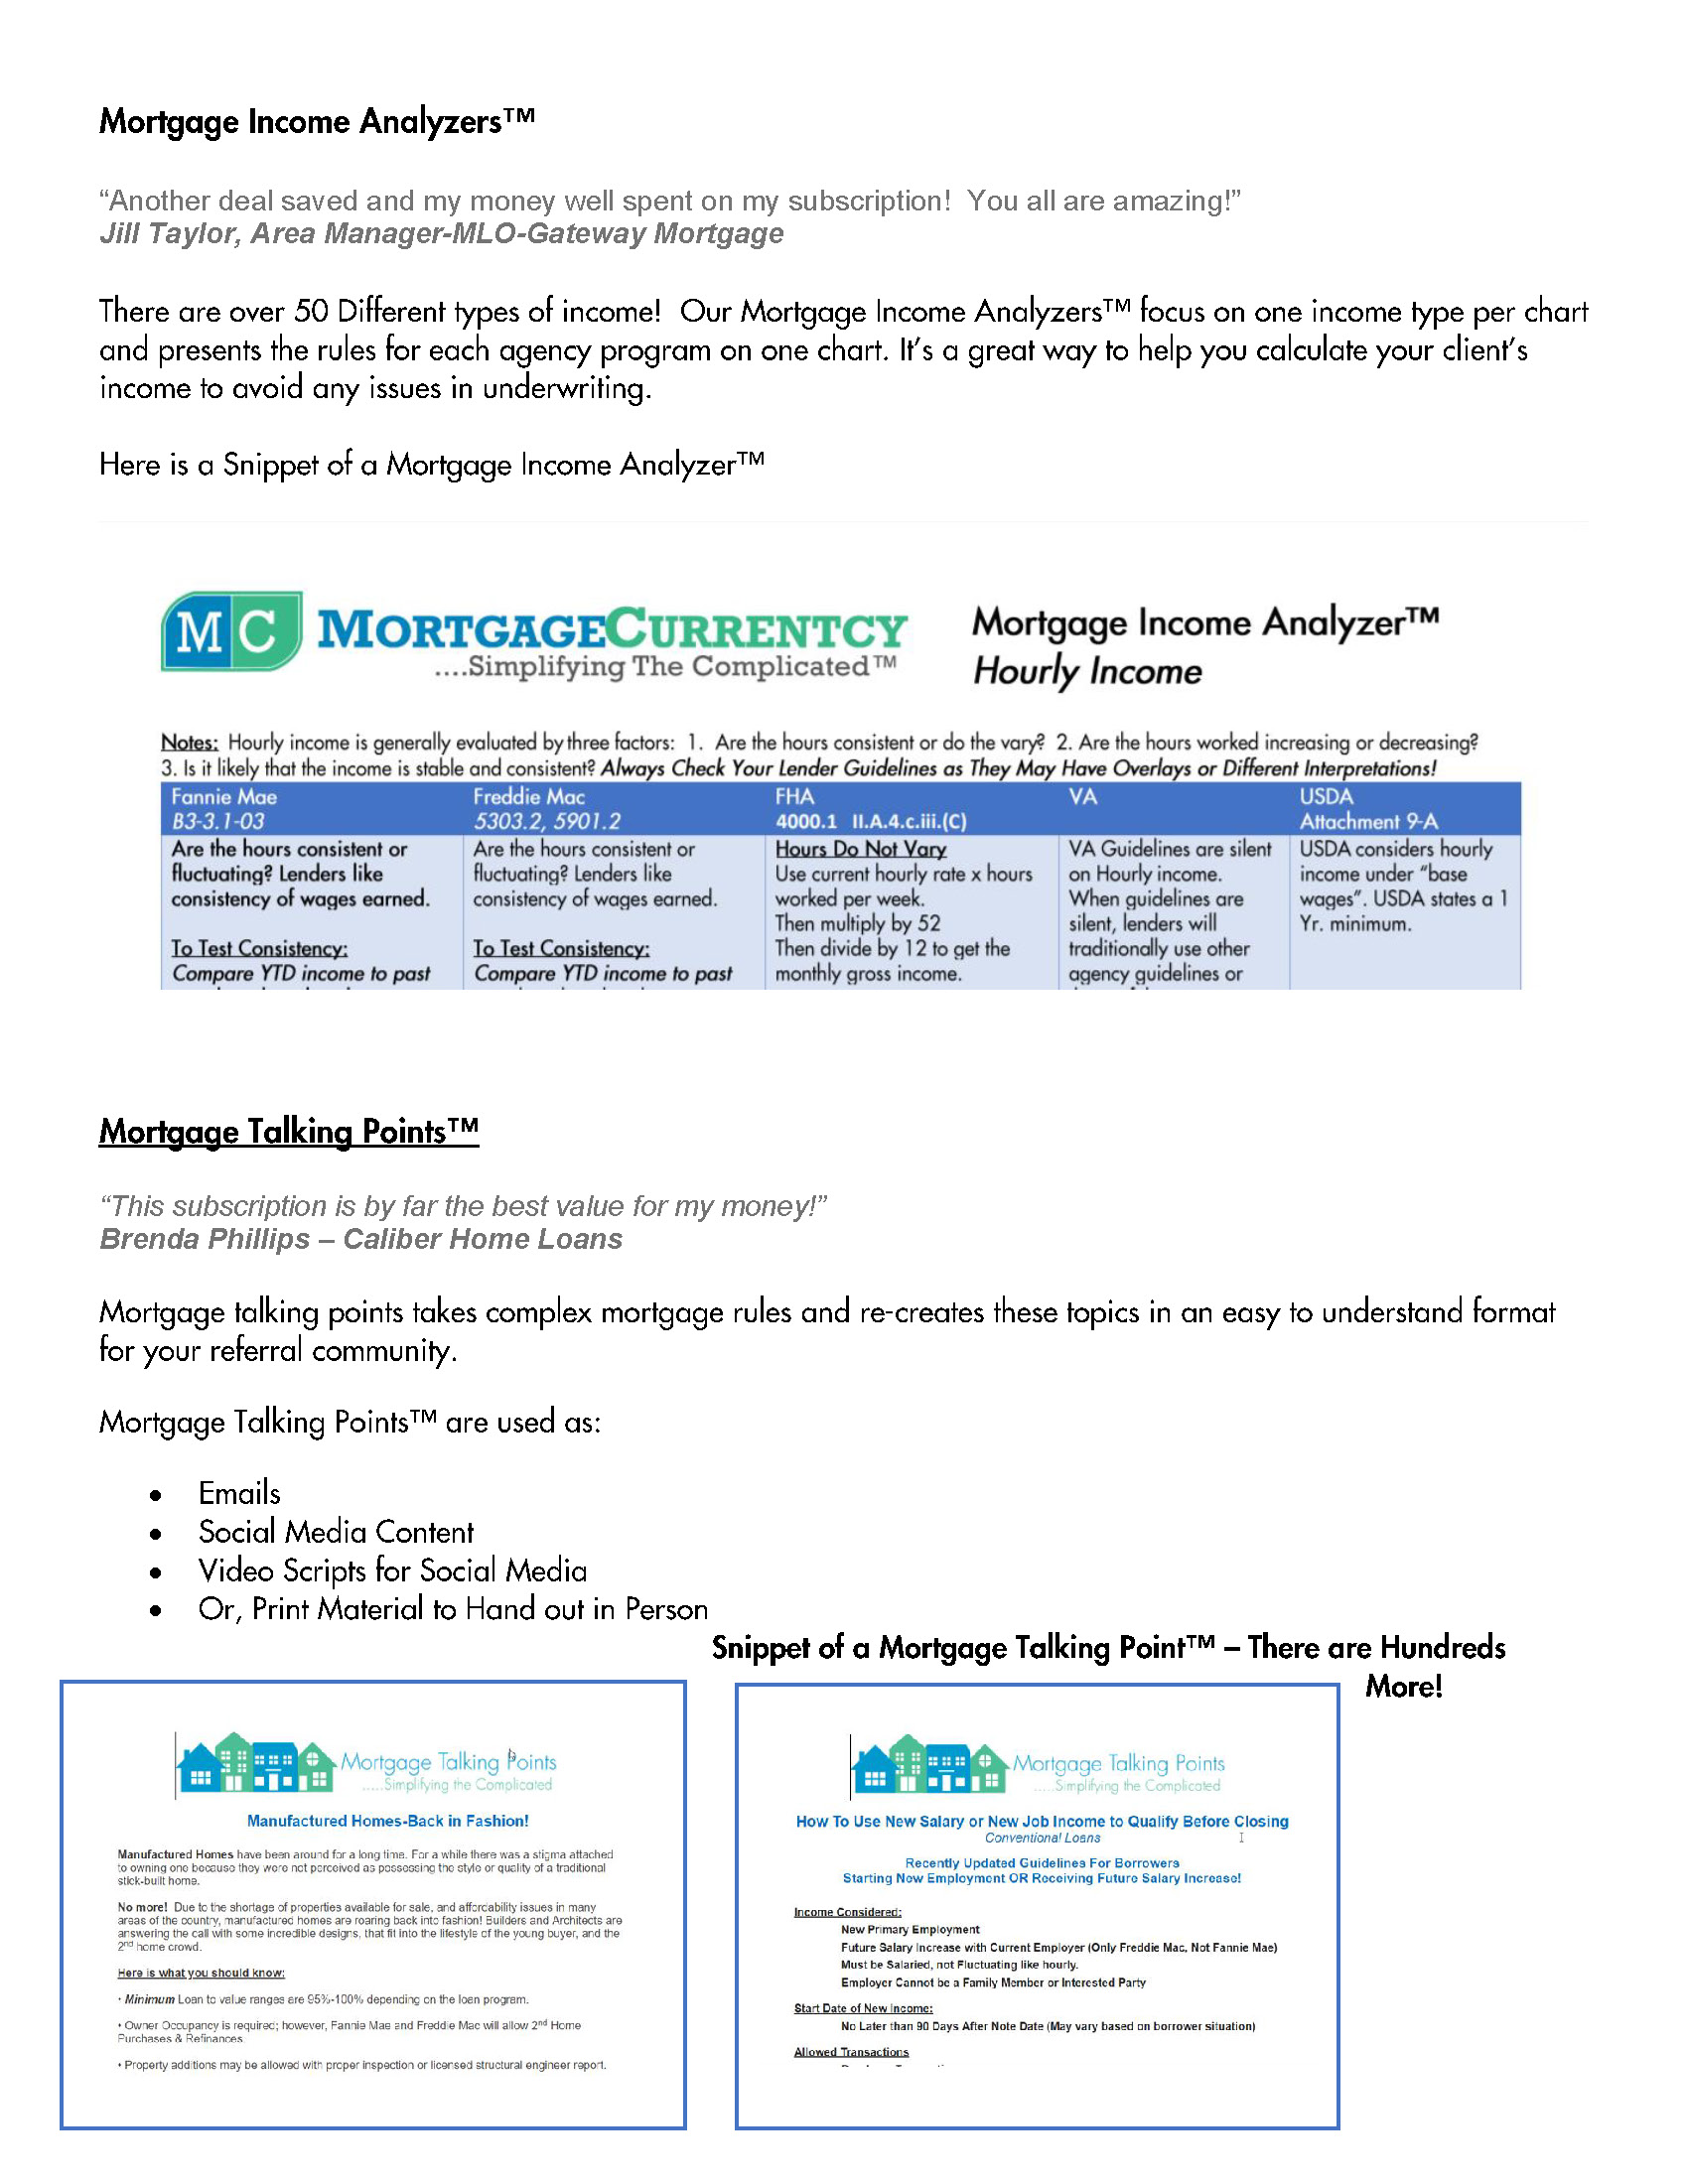 Mortgage Currentcy Overview Page 3